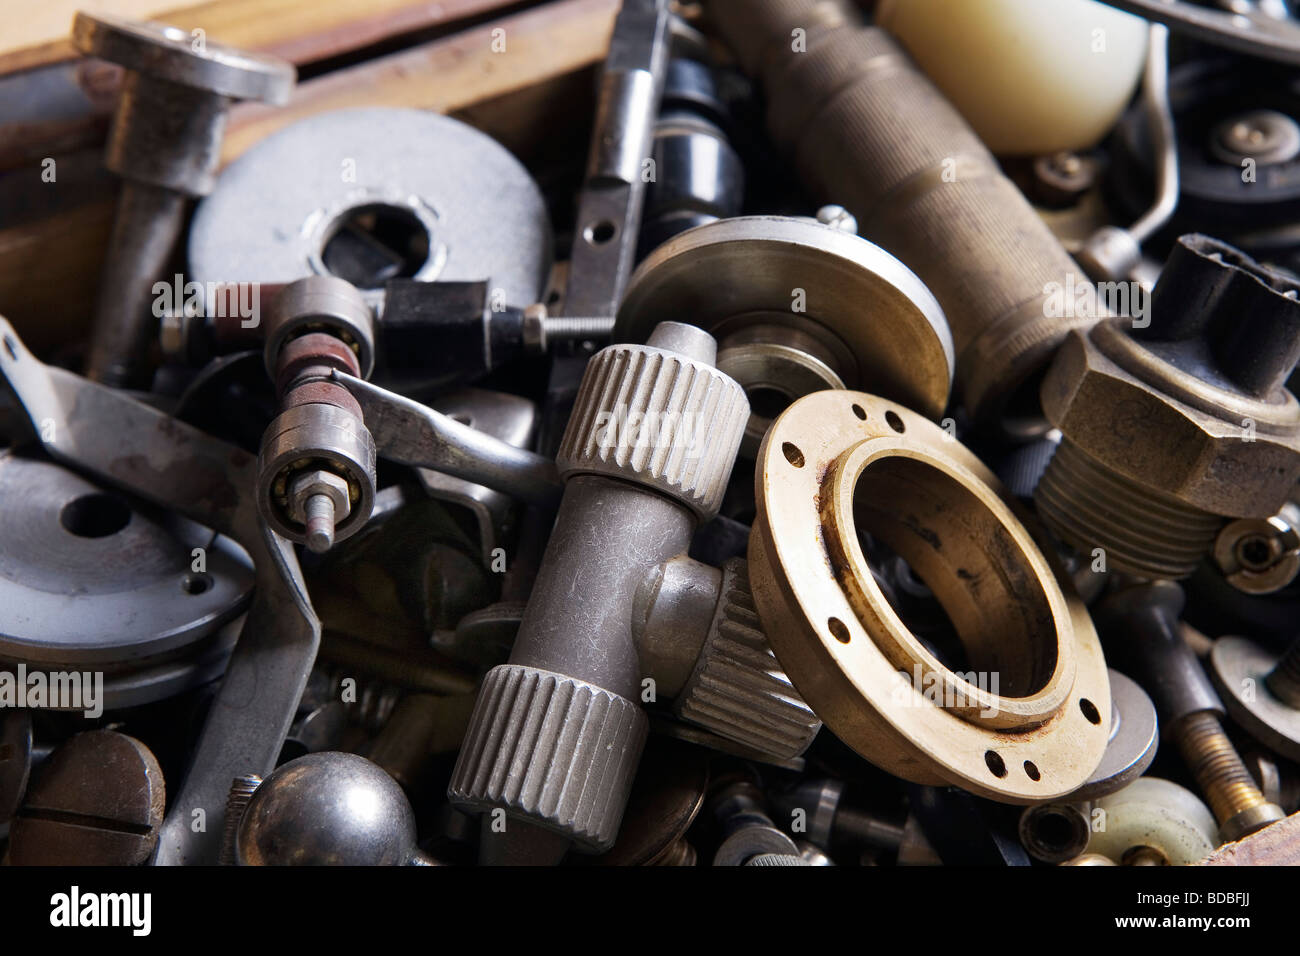 different metal parts in workshop - Stock Image